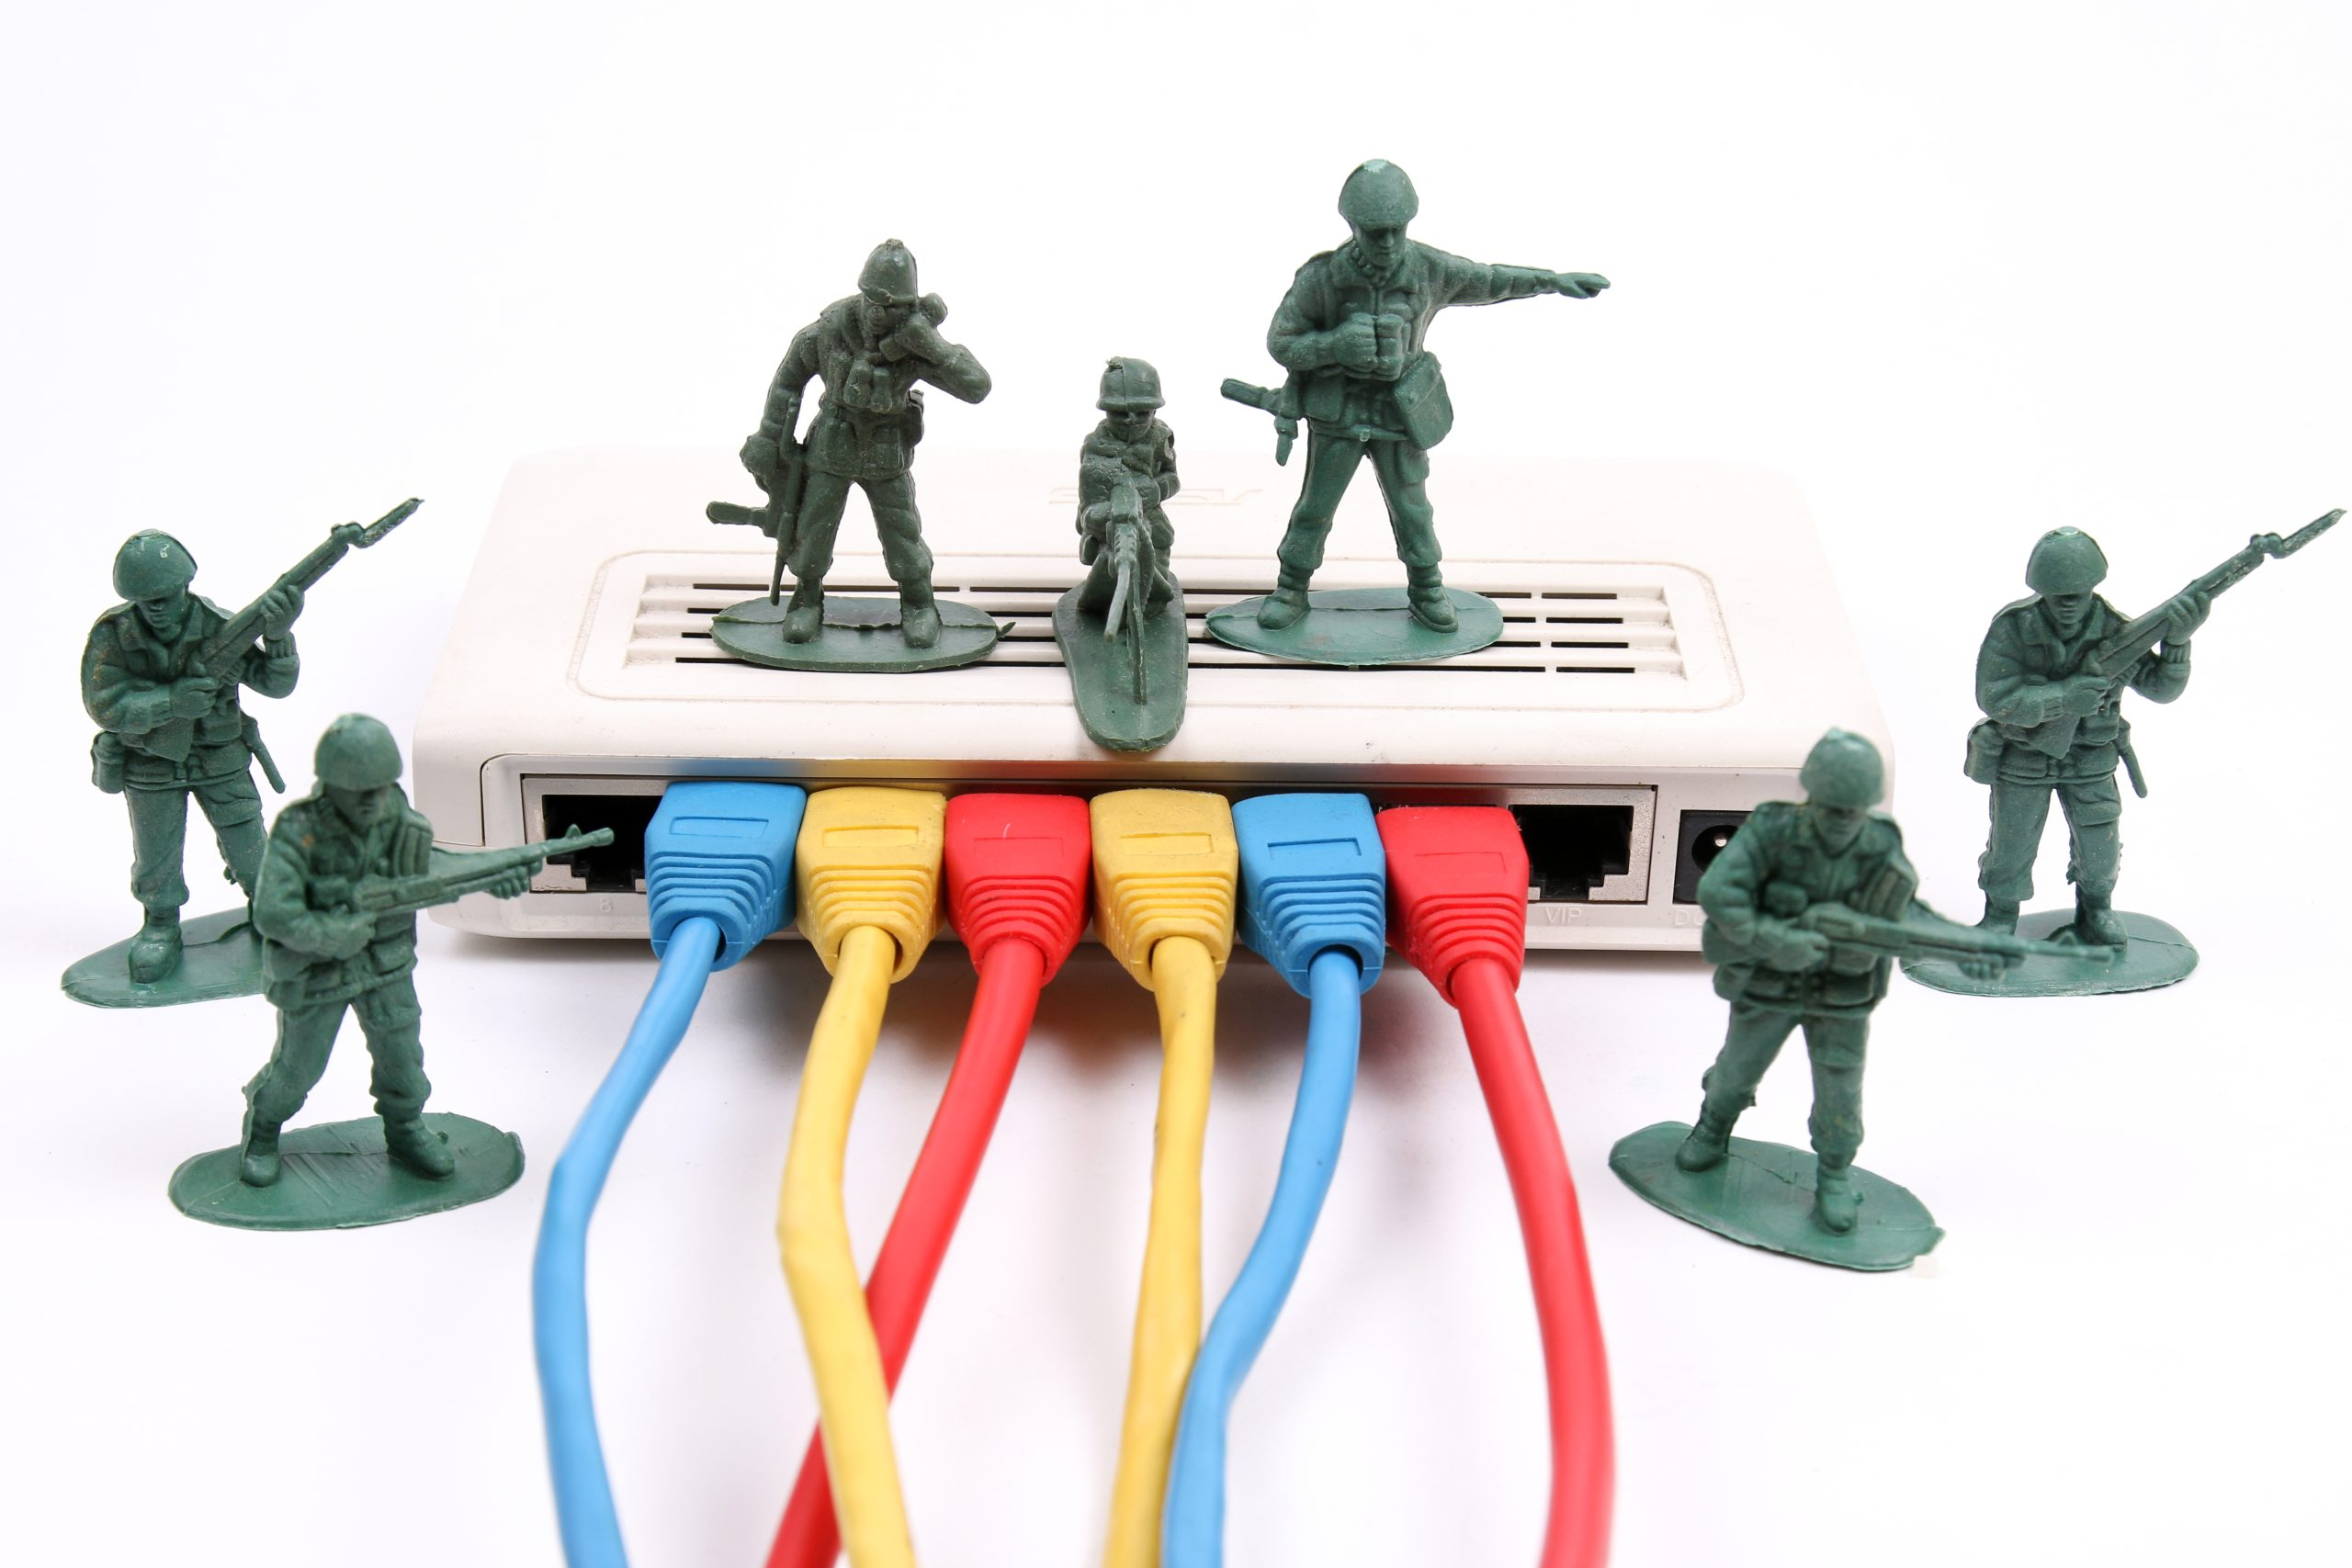 Toy soldiers guarding network router